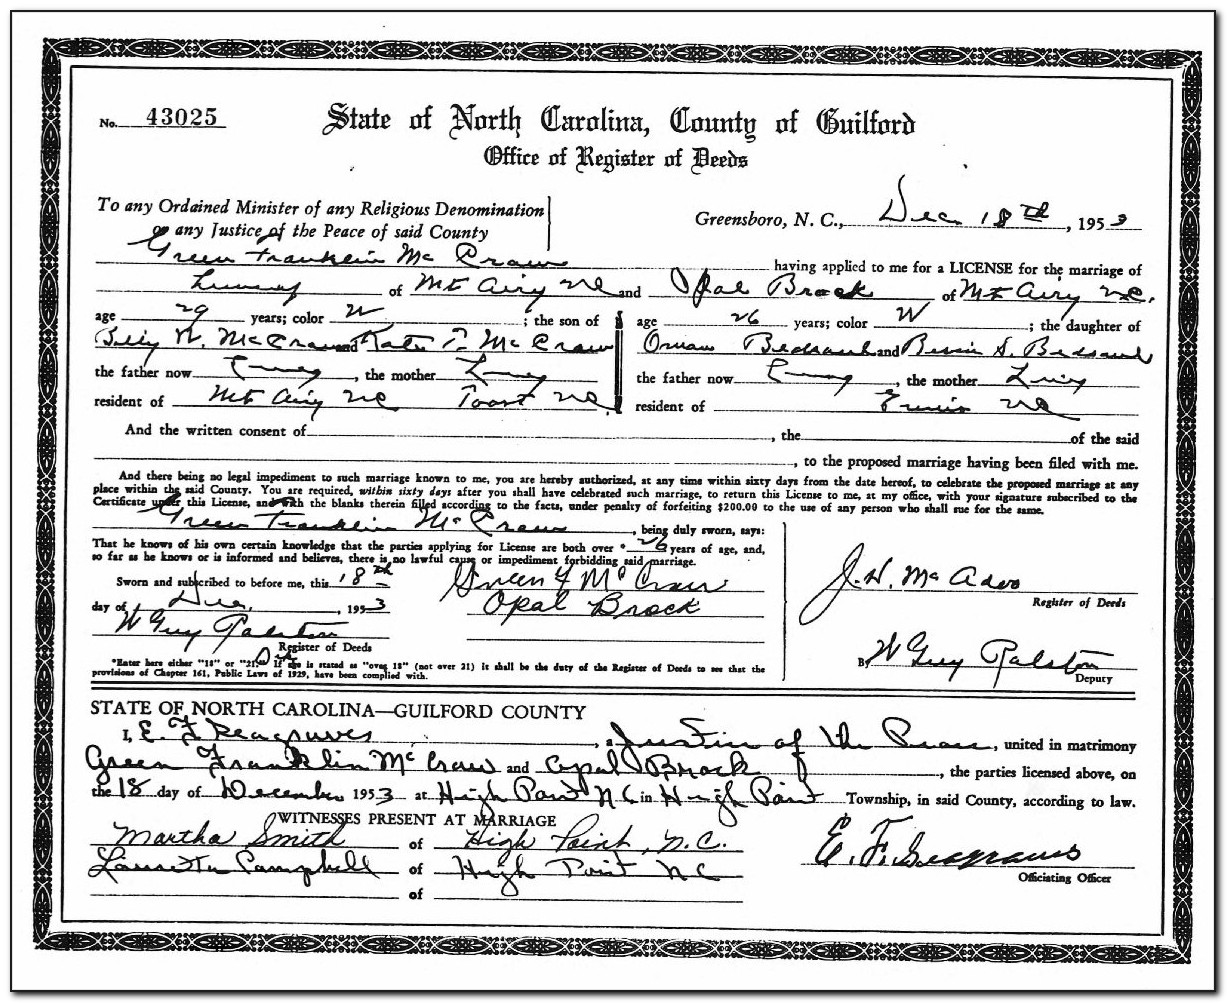 Guilford County Certified Birth Certificate